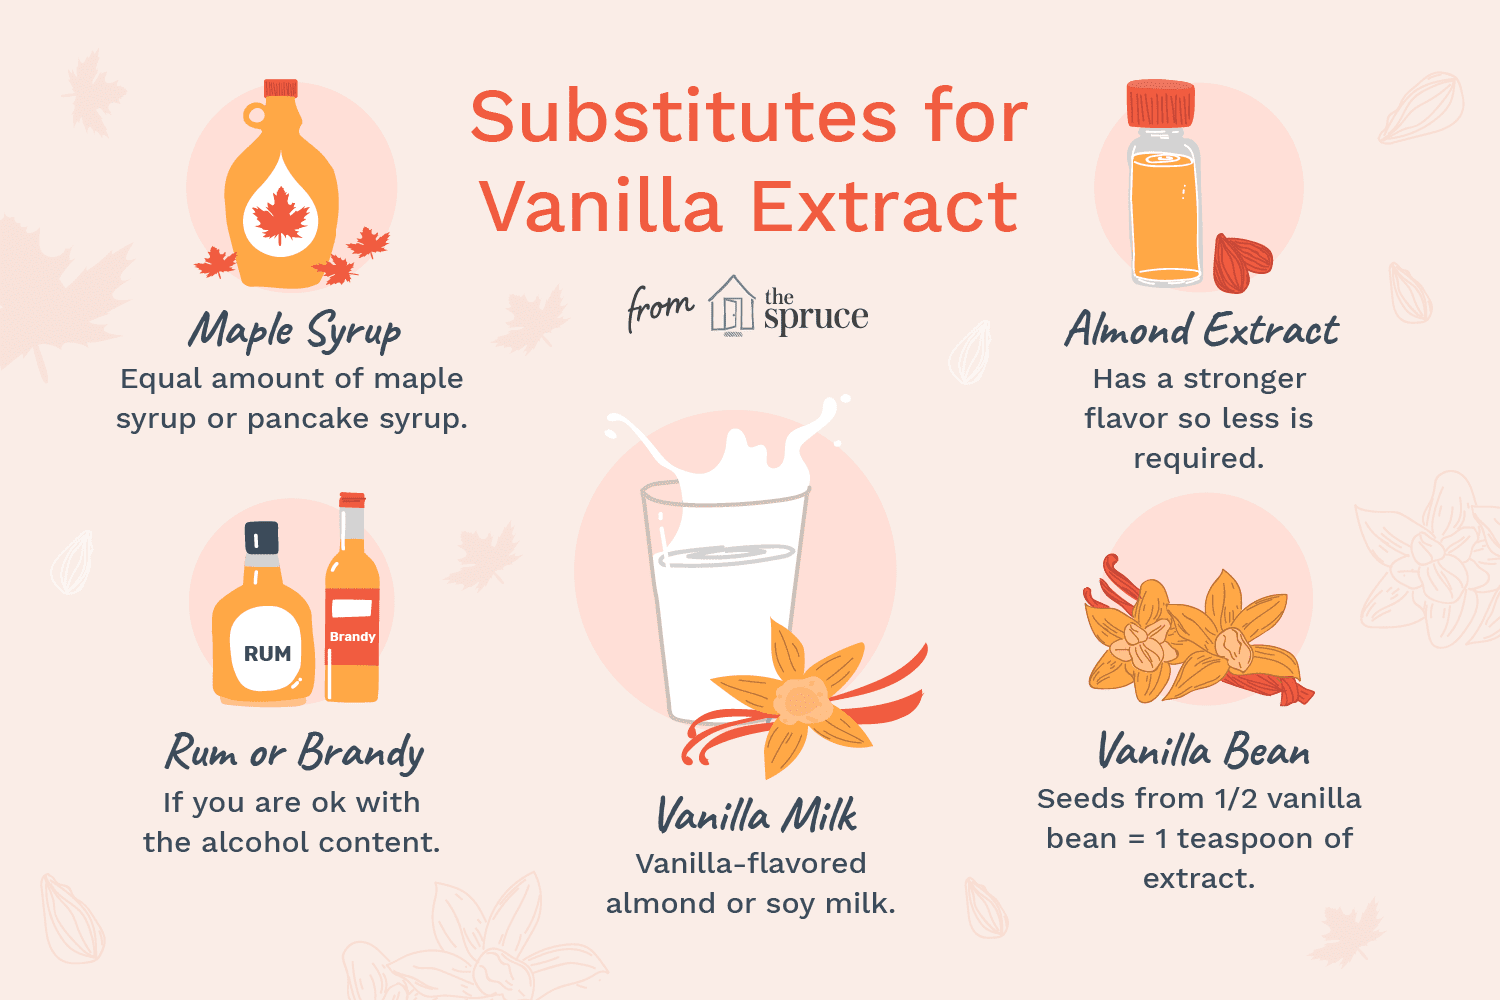 Substitutes for vanilla extract